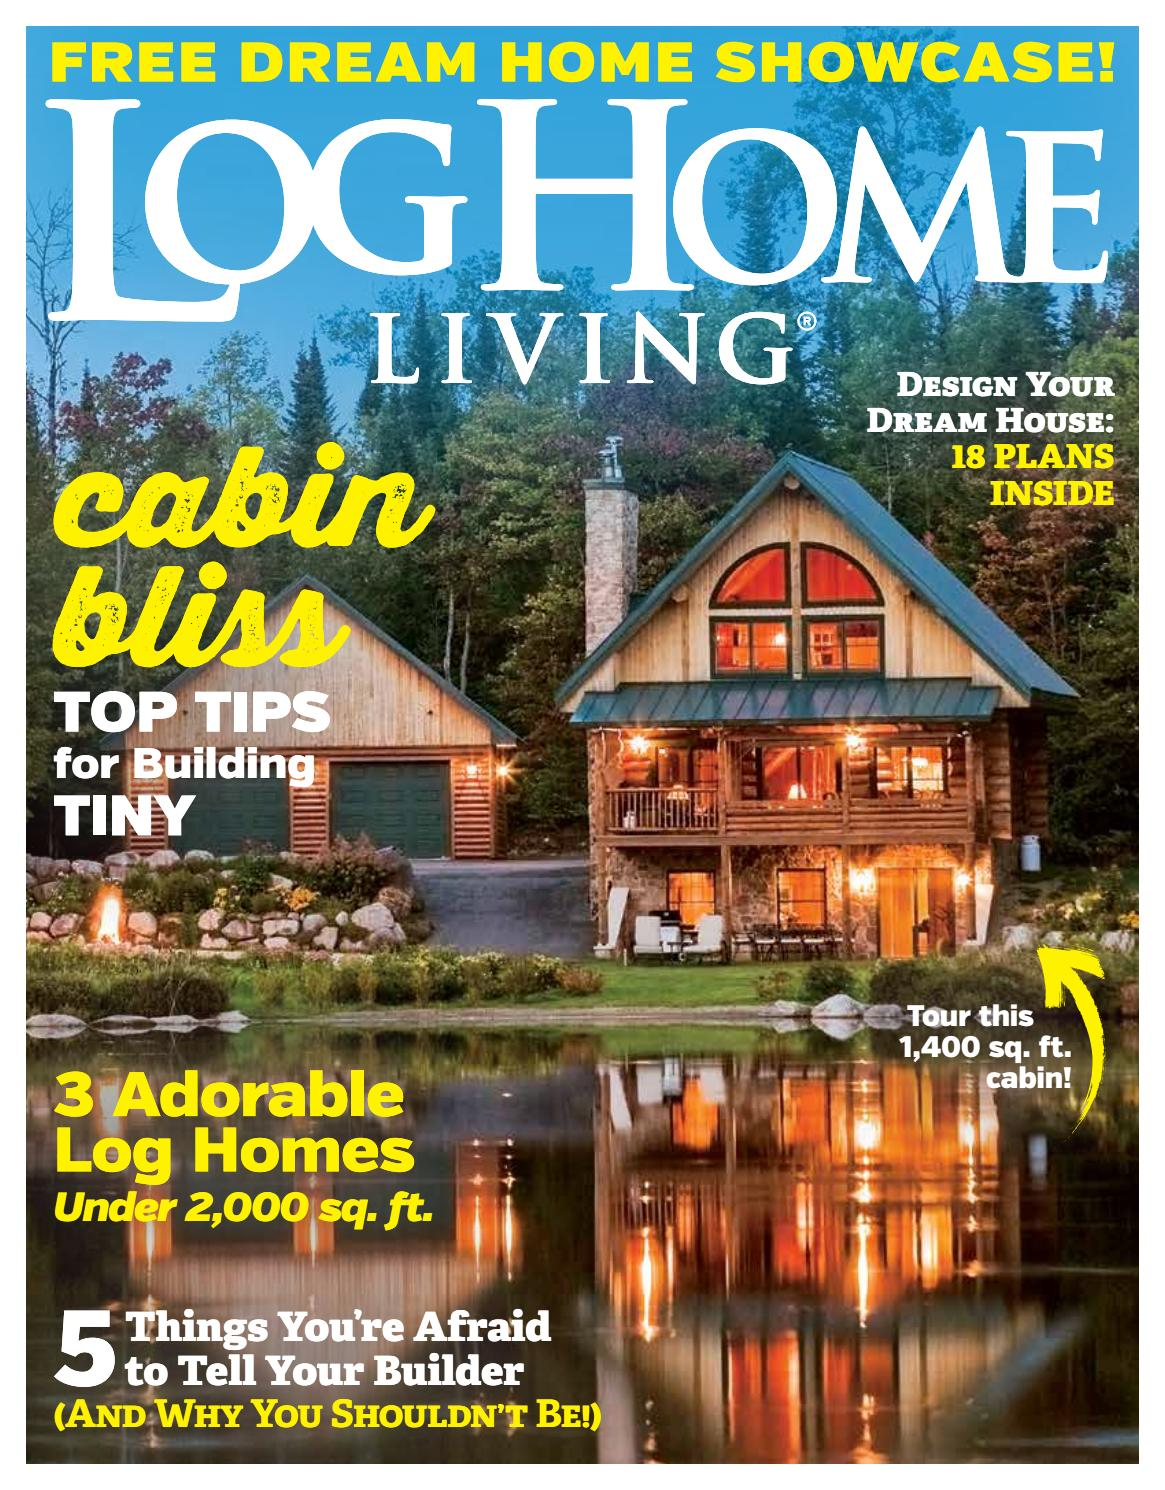 Log Home Living - Dream Home Showcase by True North Log Homes - issuu